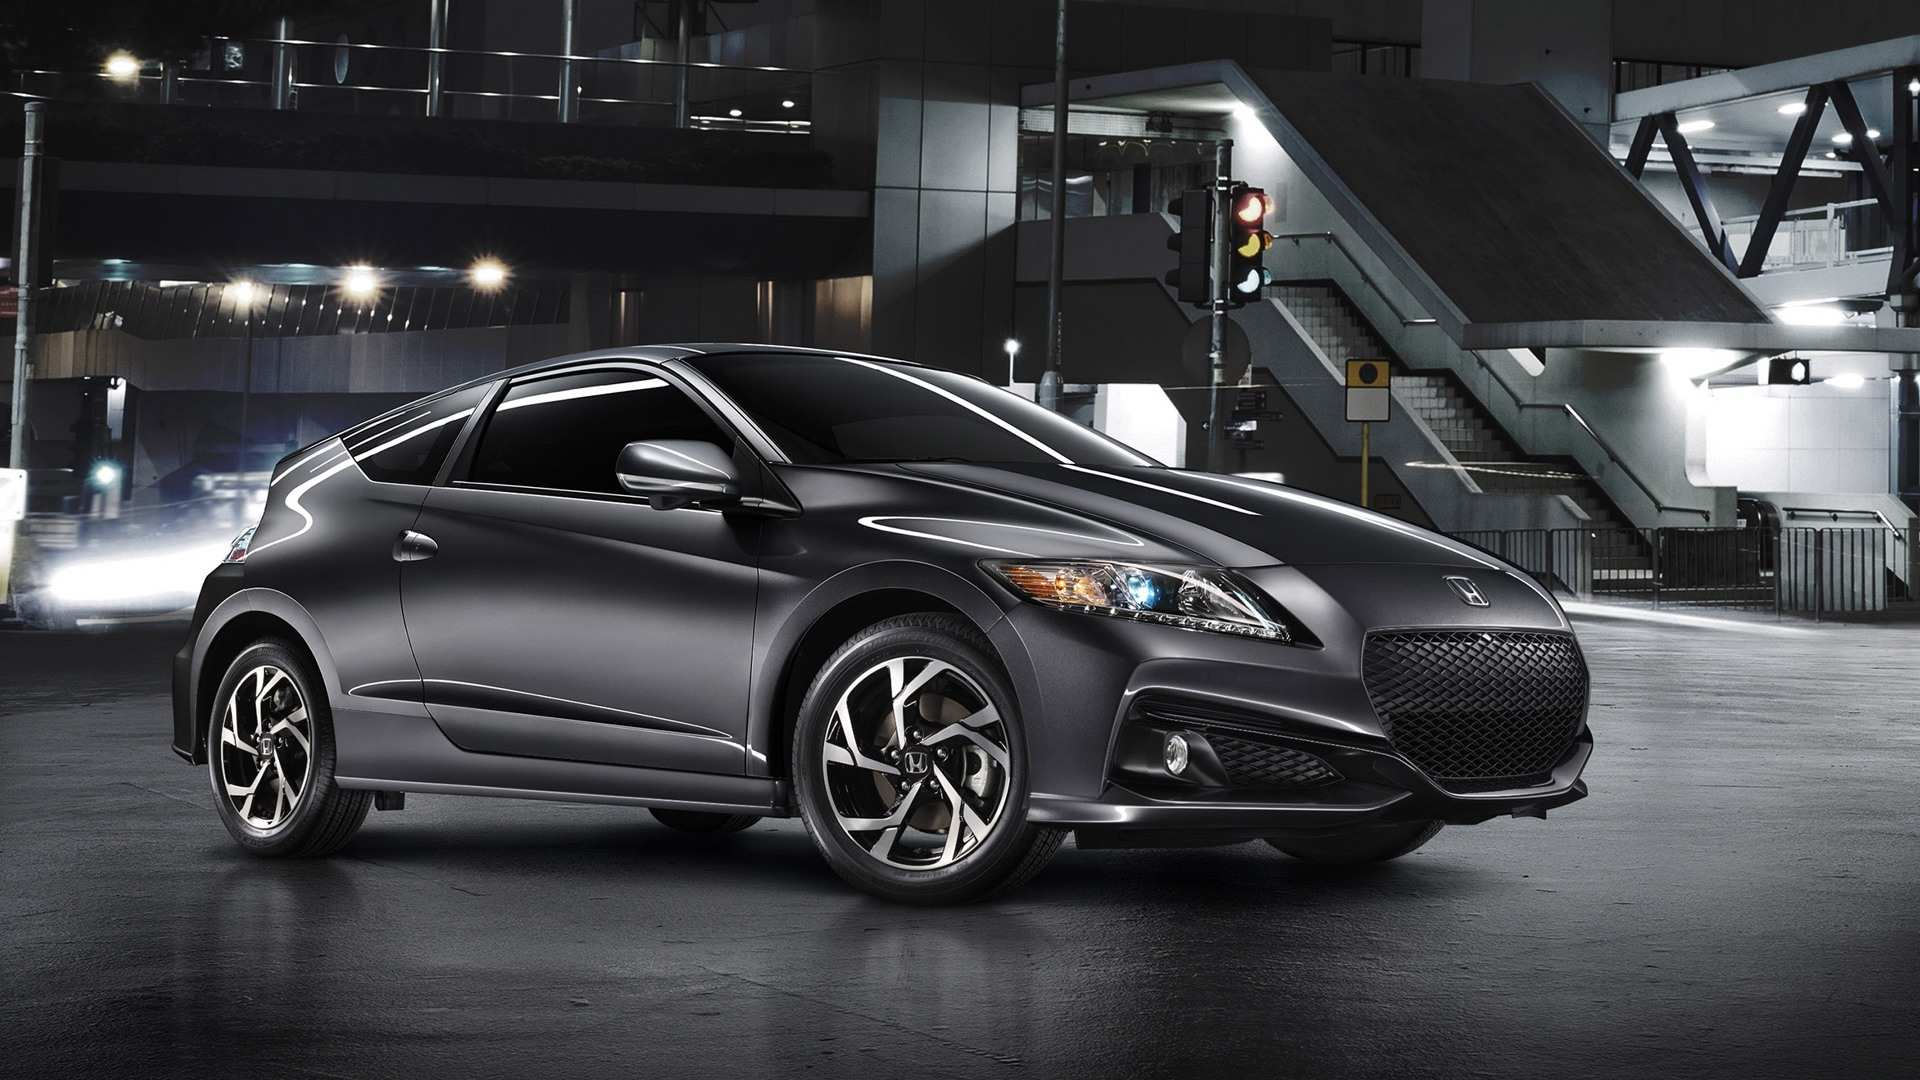 64 Best Review 2020 Honda Cr Z Price and Review with 2020 Honda Cr Z